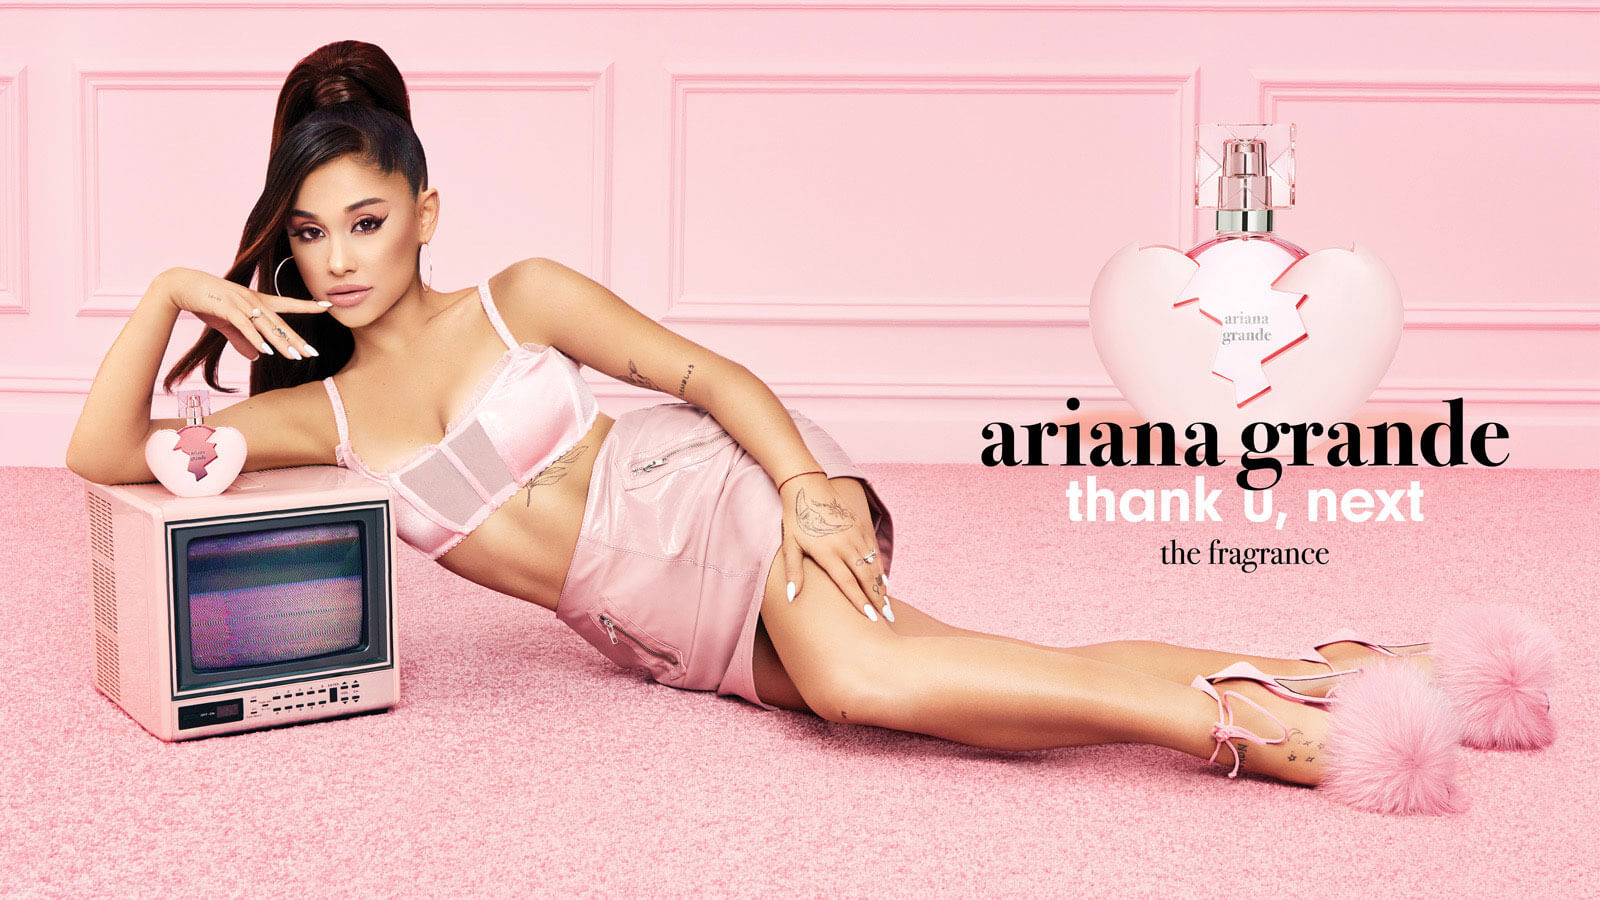 Ariana Grande thank u, next the fragrance